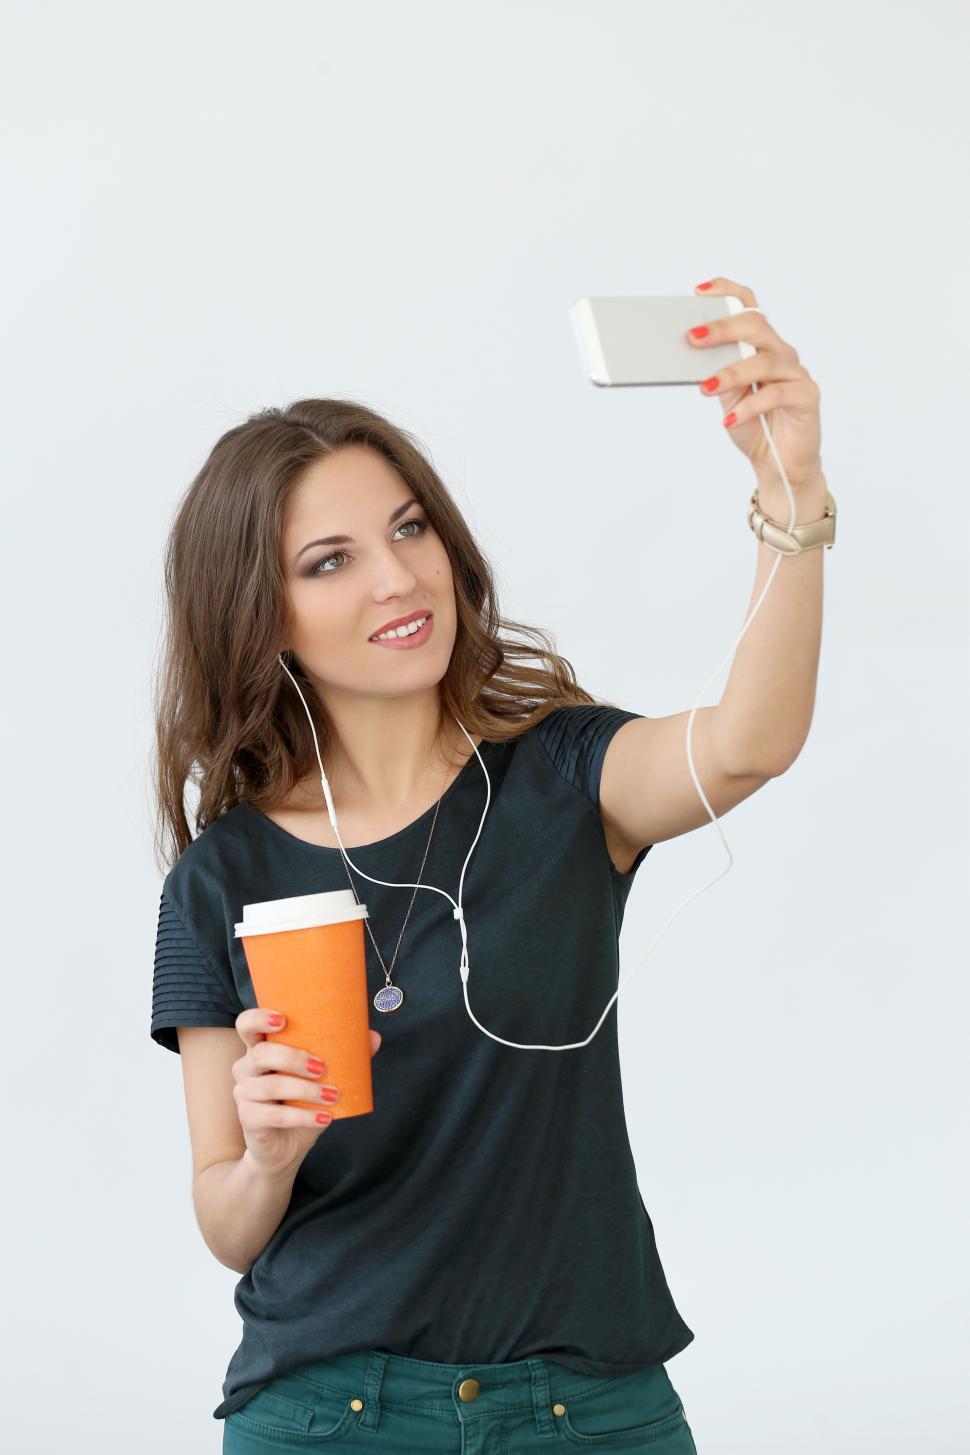 Download Free Stock HD Photo of Curly girl with mobile phone taking selfie Online